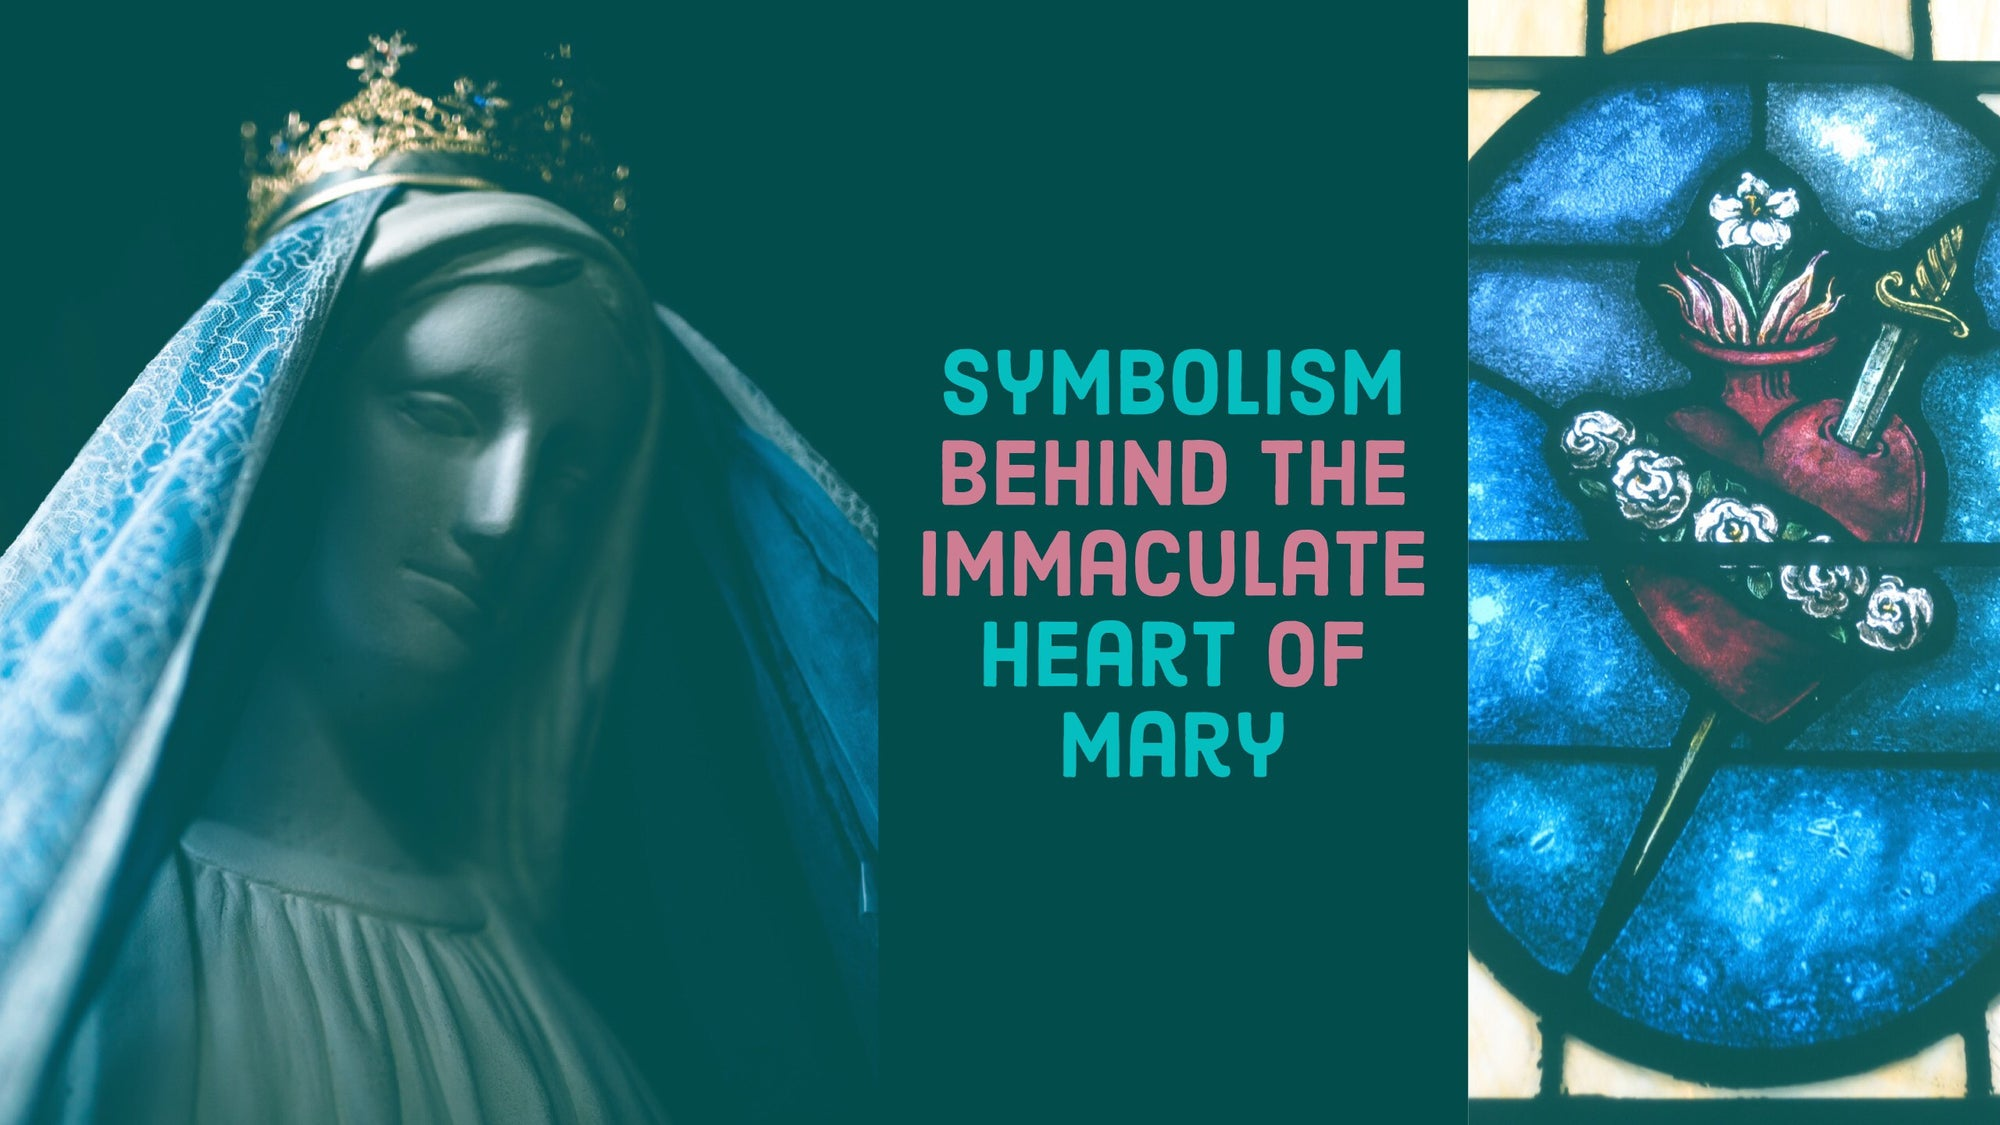 Symbolism Behind the Immaculate Heart of Mary